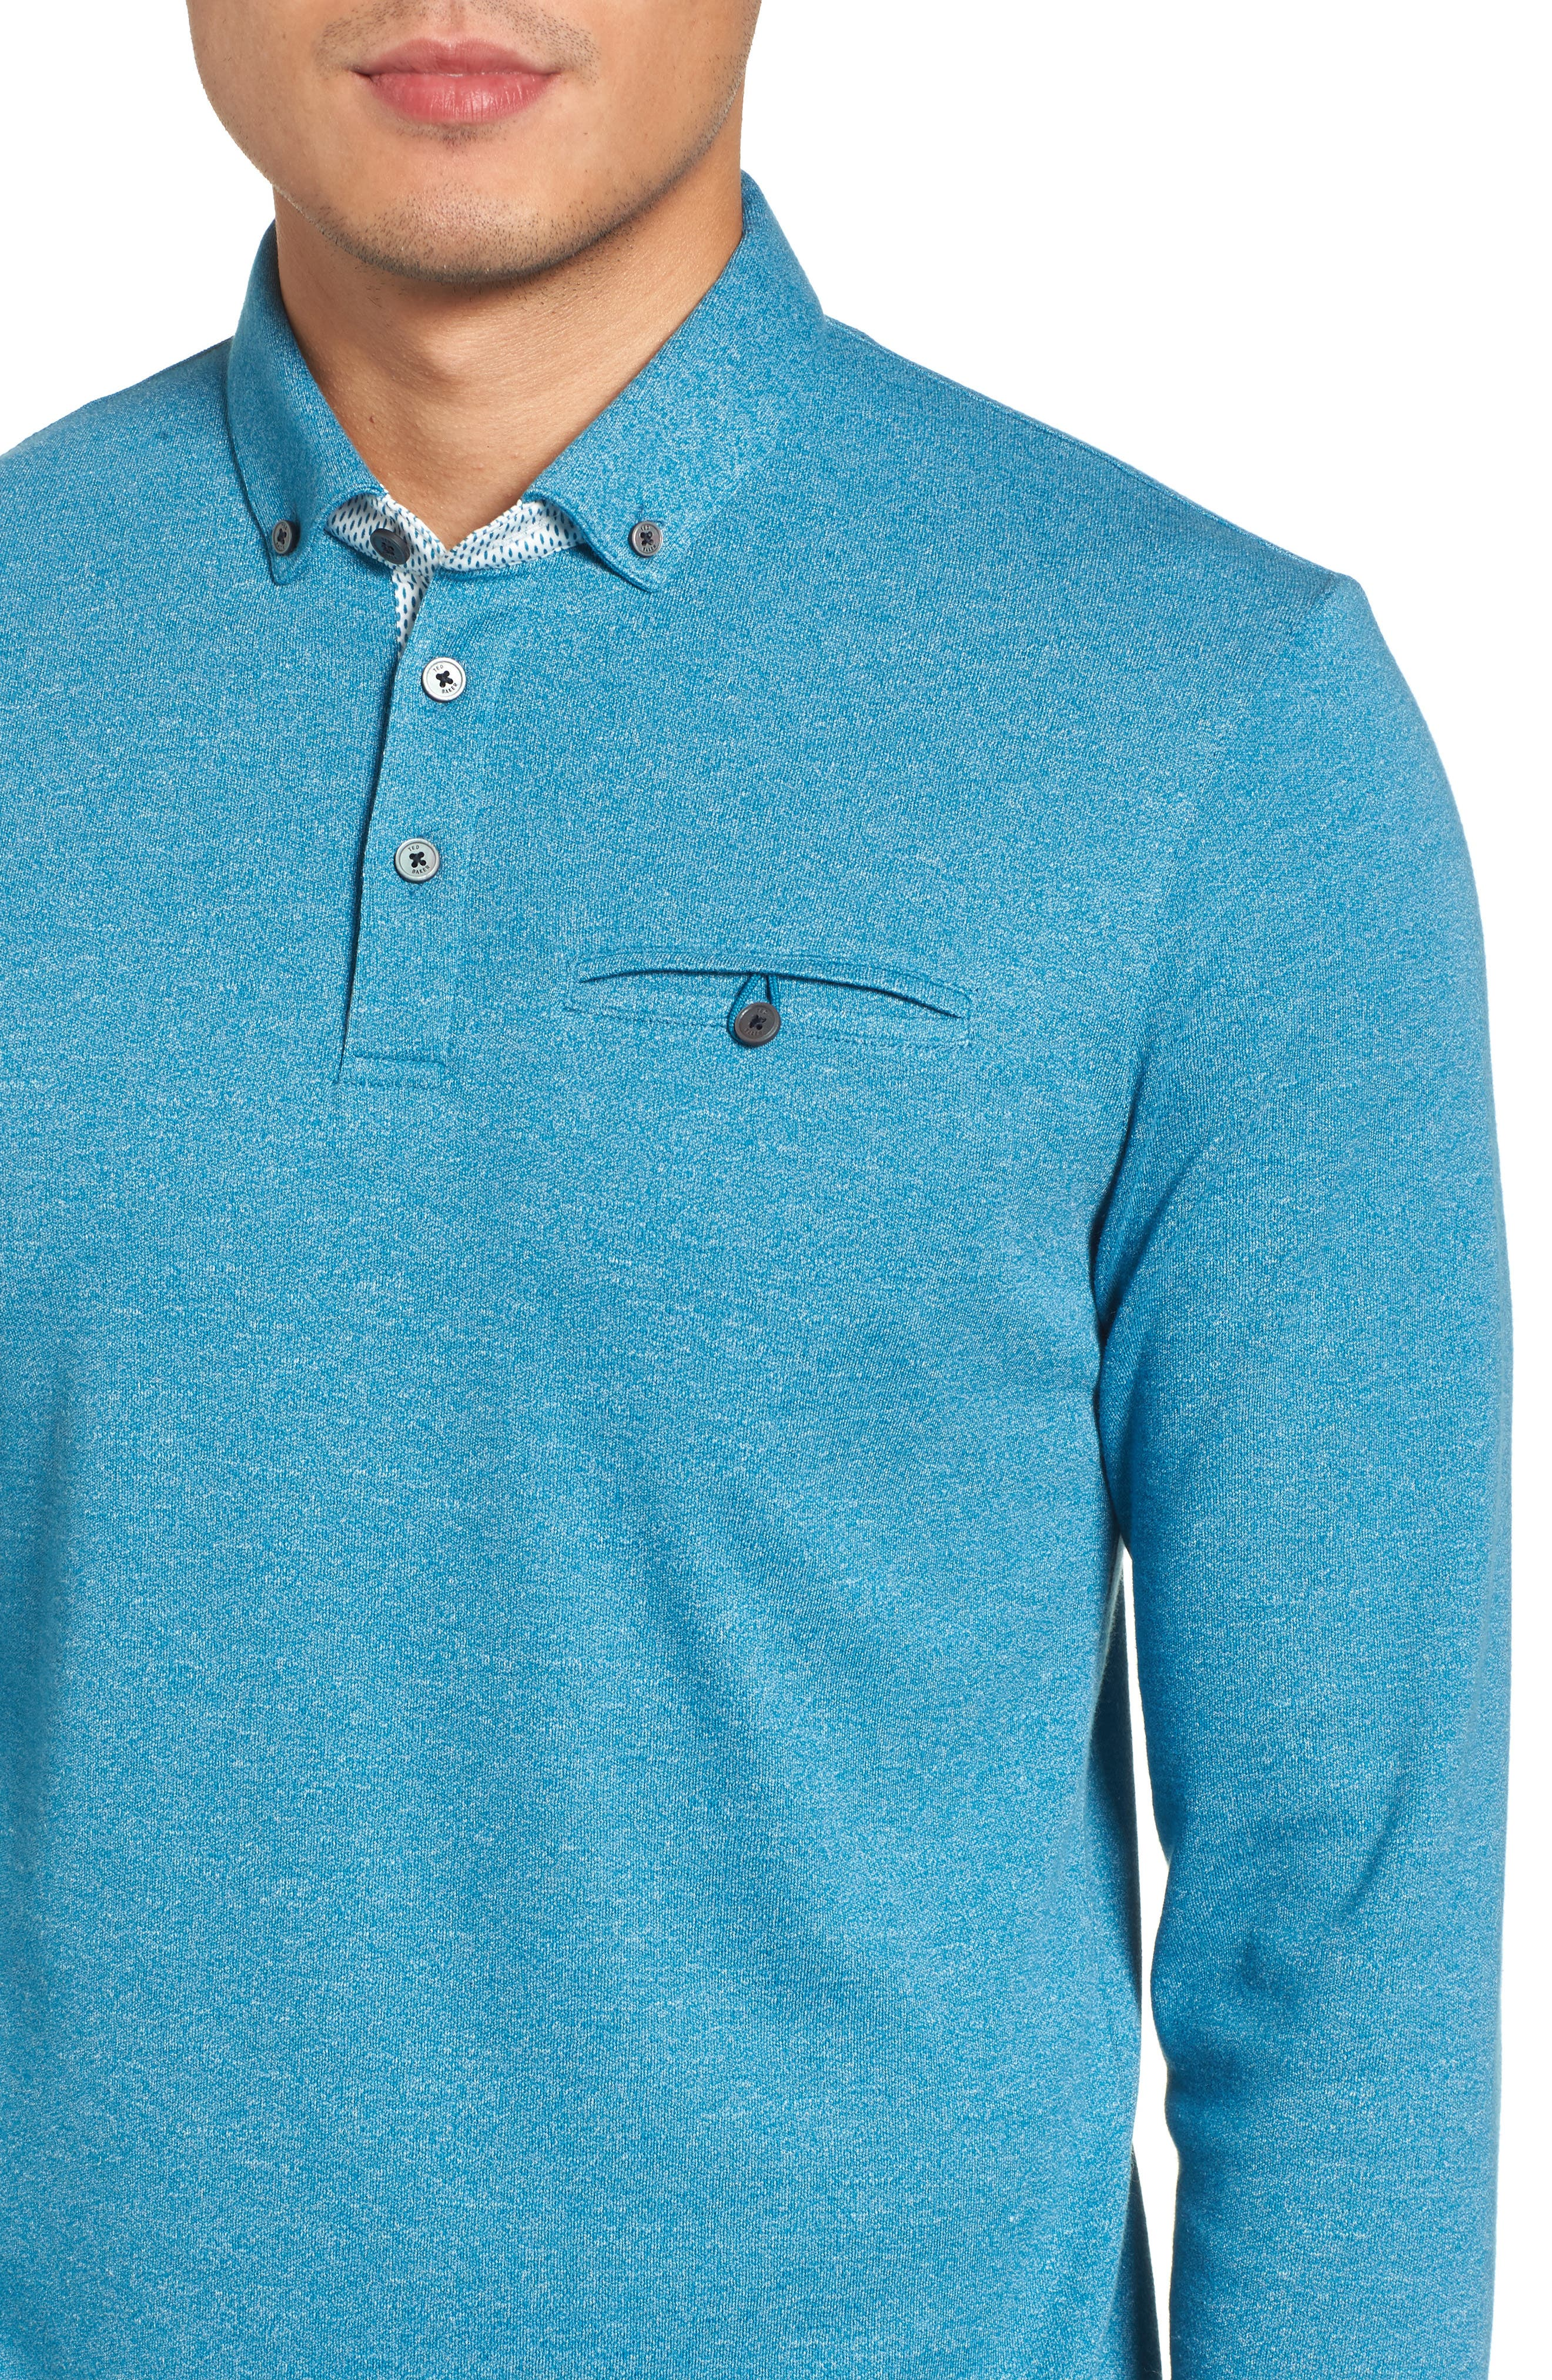 Yamway Modern Slim Fit Long Sleeve Polo,                             Alternate thumbnail 12, color,